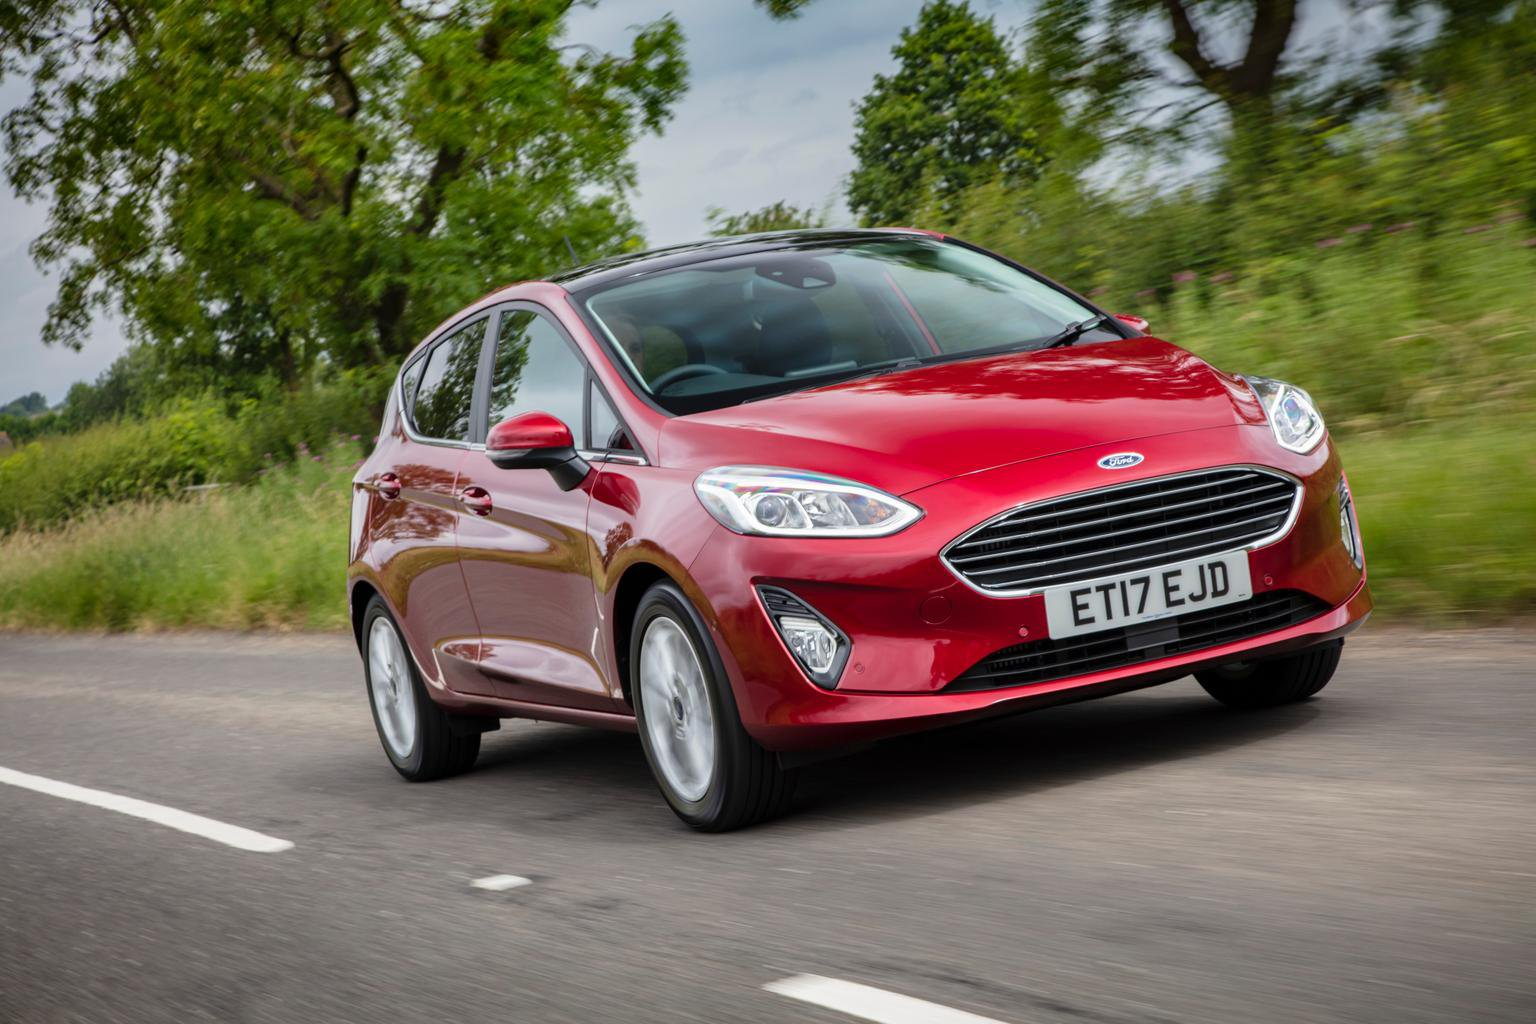 2017 Ford Fiesta 1.0 Ecoboost 100 review - verdict